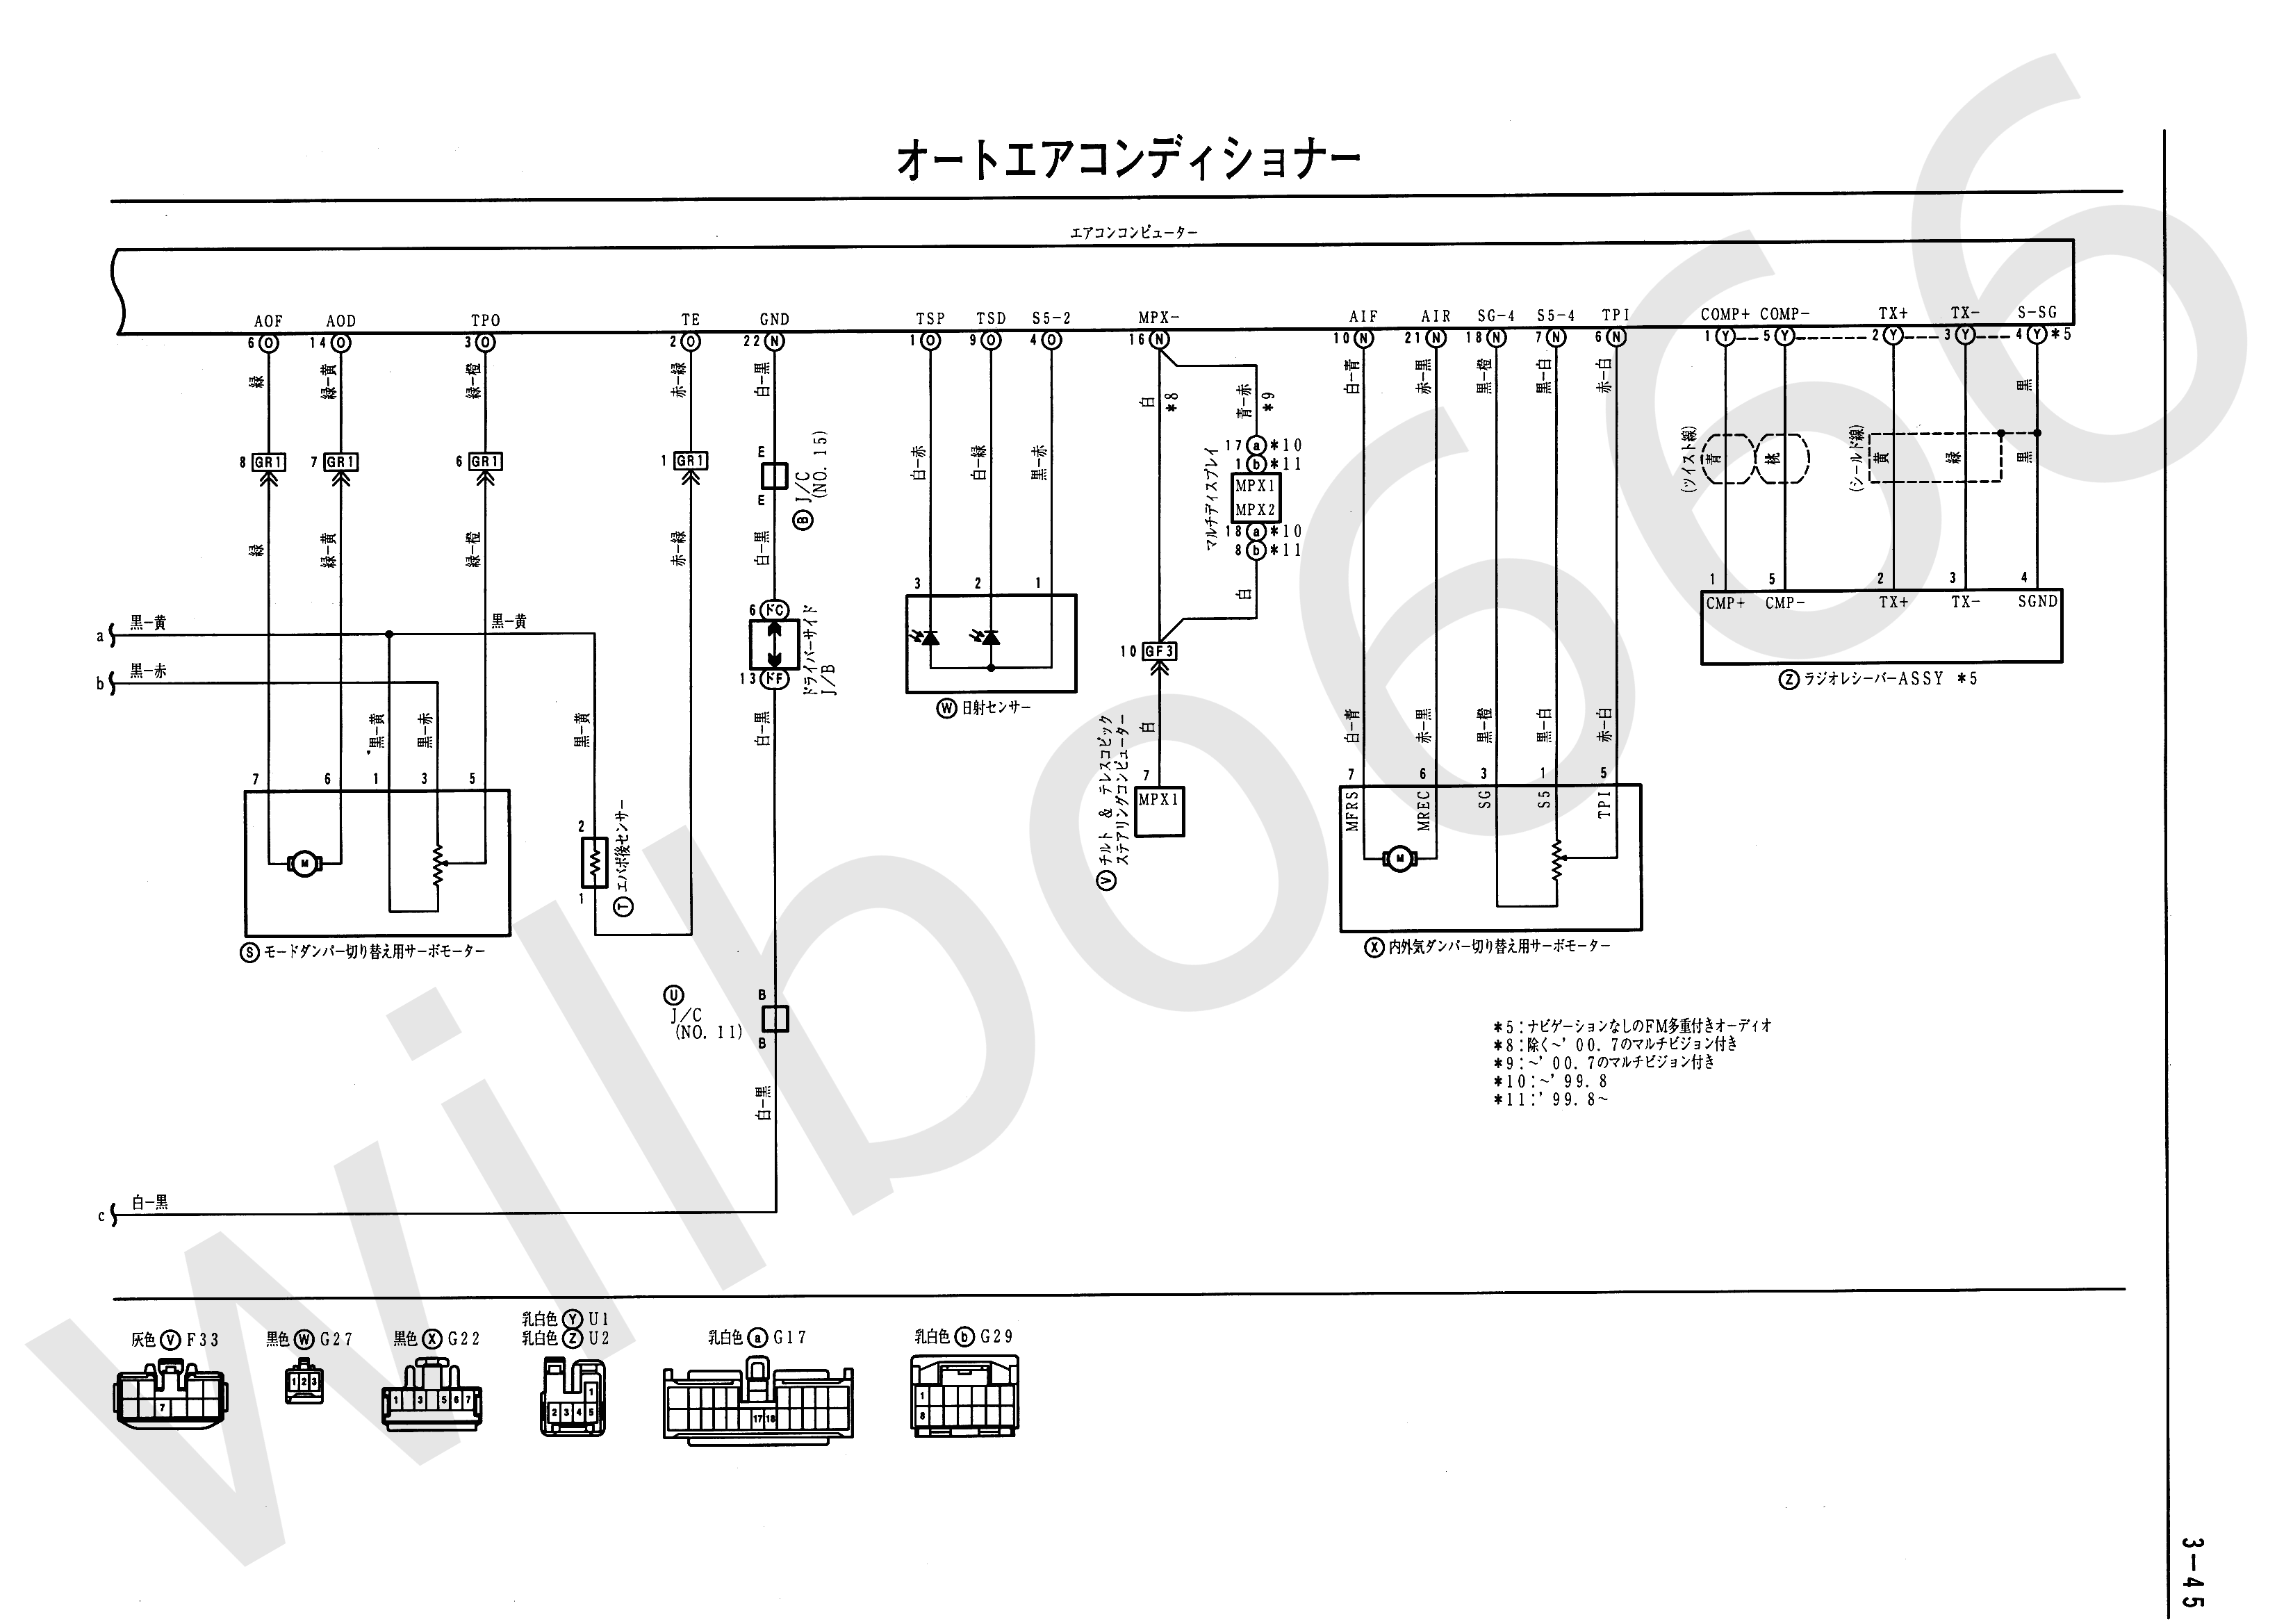 JZS161 Electrical Wiring Diagram 6748505 3 45?resize\\=3300%2C2337 rough house 50cc scooter wiring diagram kymco scooter parts 50cc scooter wiring diagram at highcare.asia